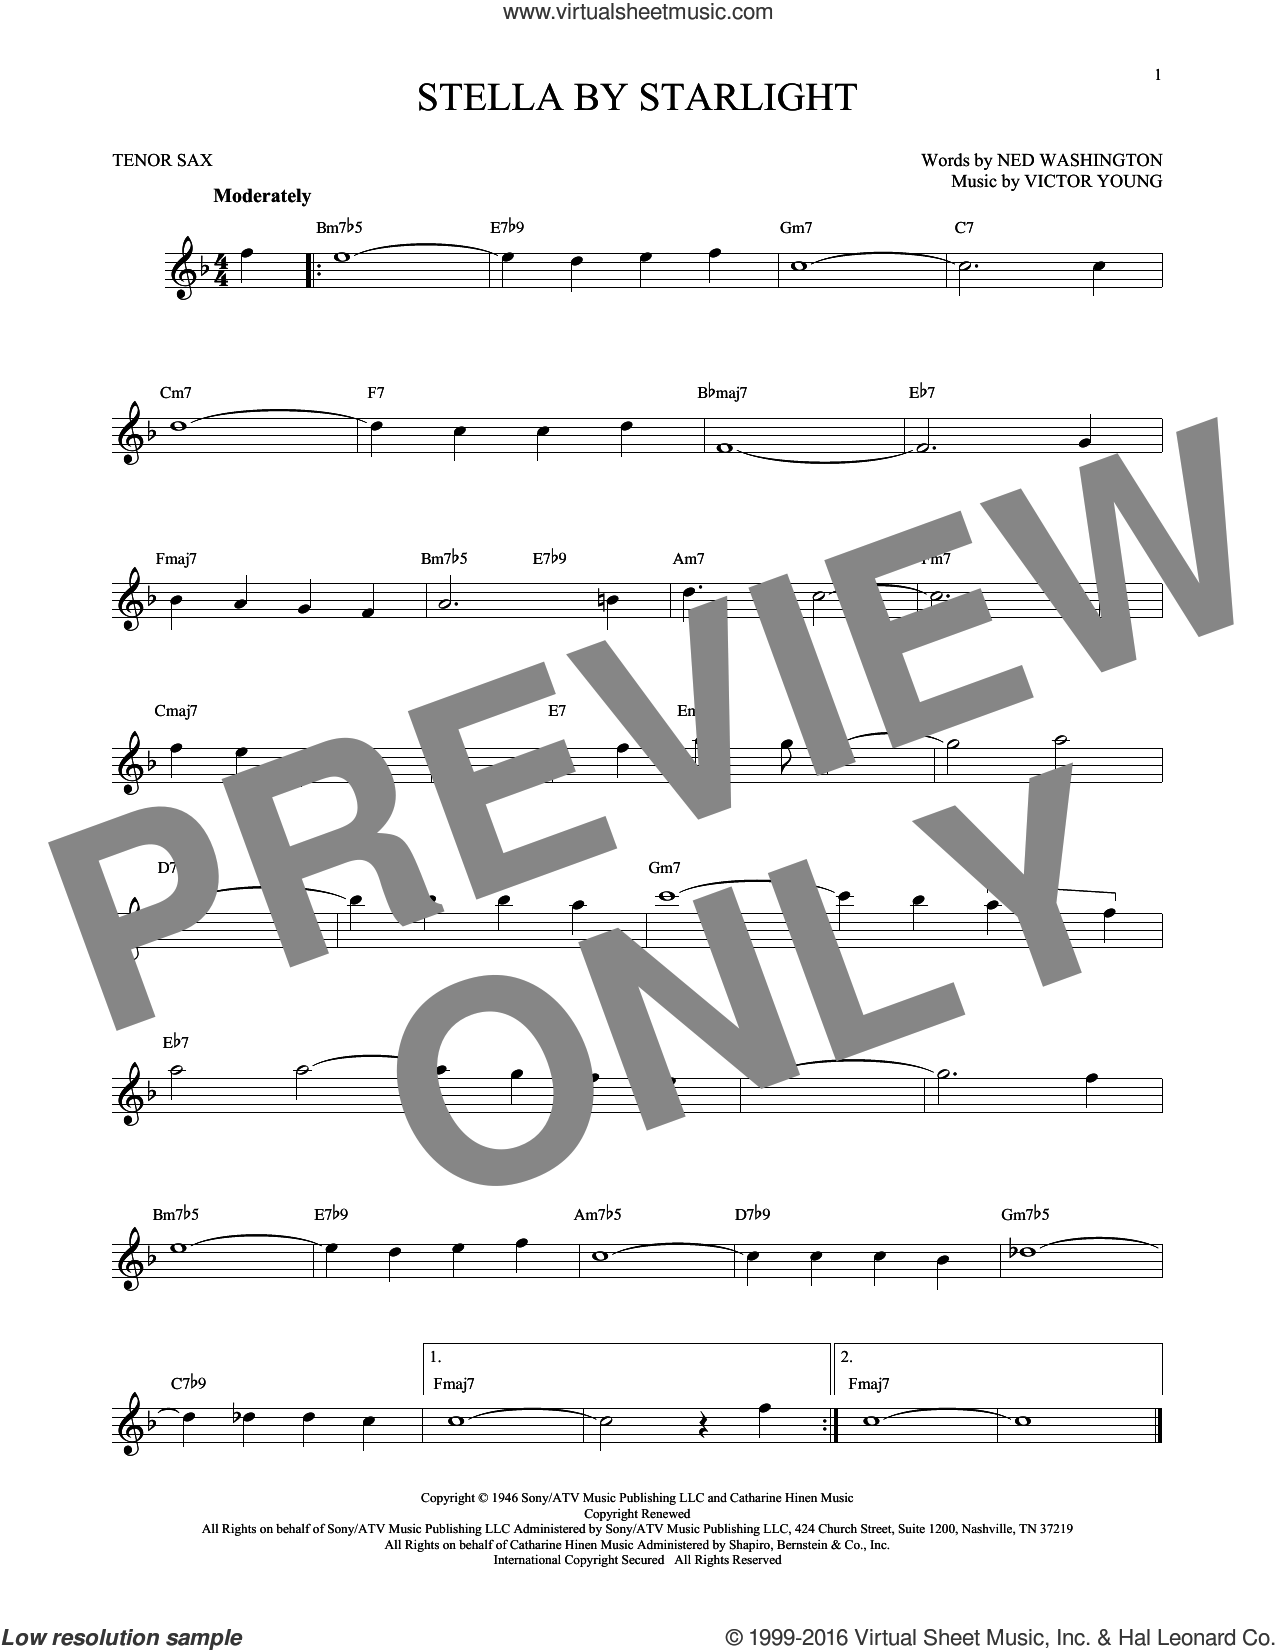 Stella By Starlight sheet music for tenor saxophone solo by Ned Washington, Ray Charles and Victor Young, intermediate tenor saxophone. Score Image Preview.